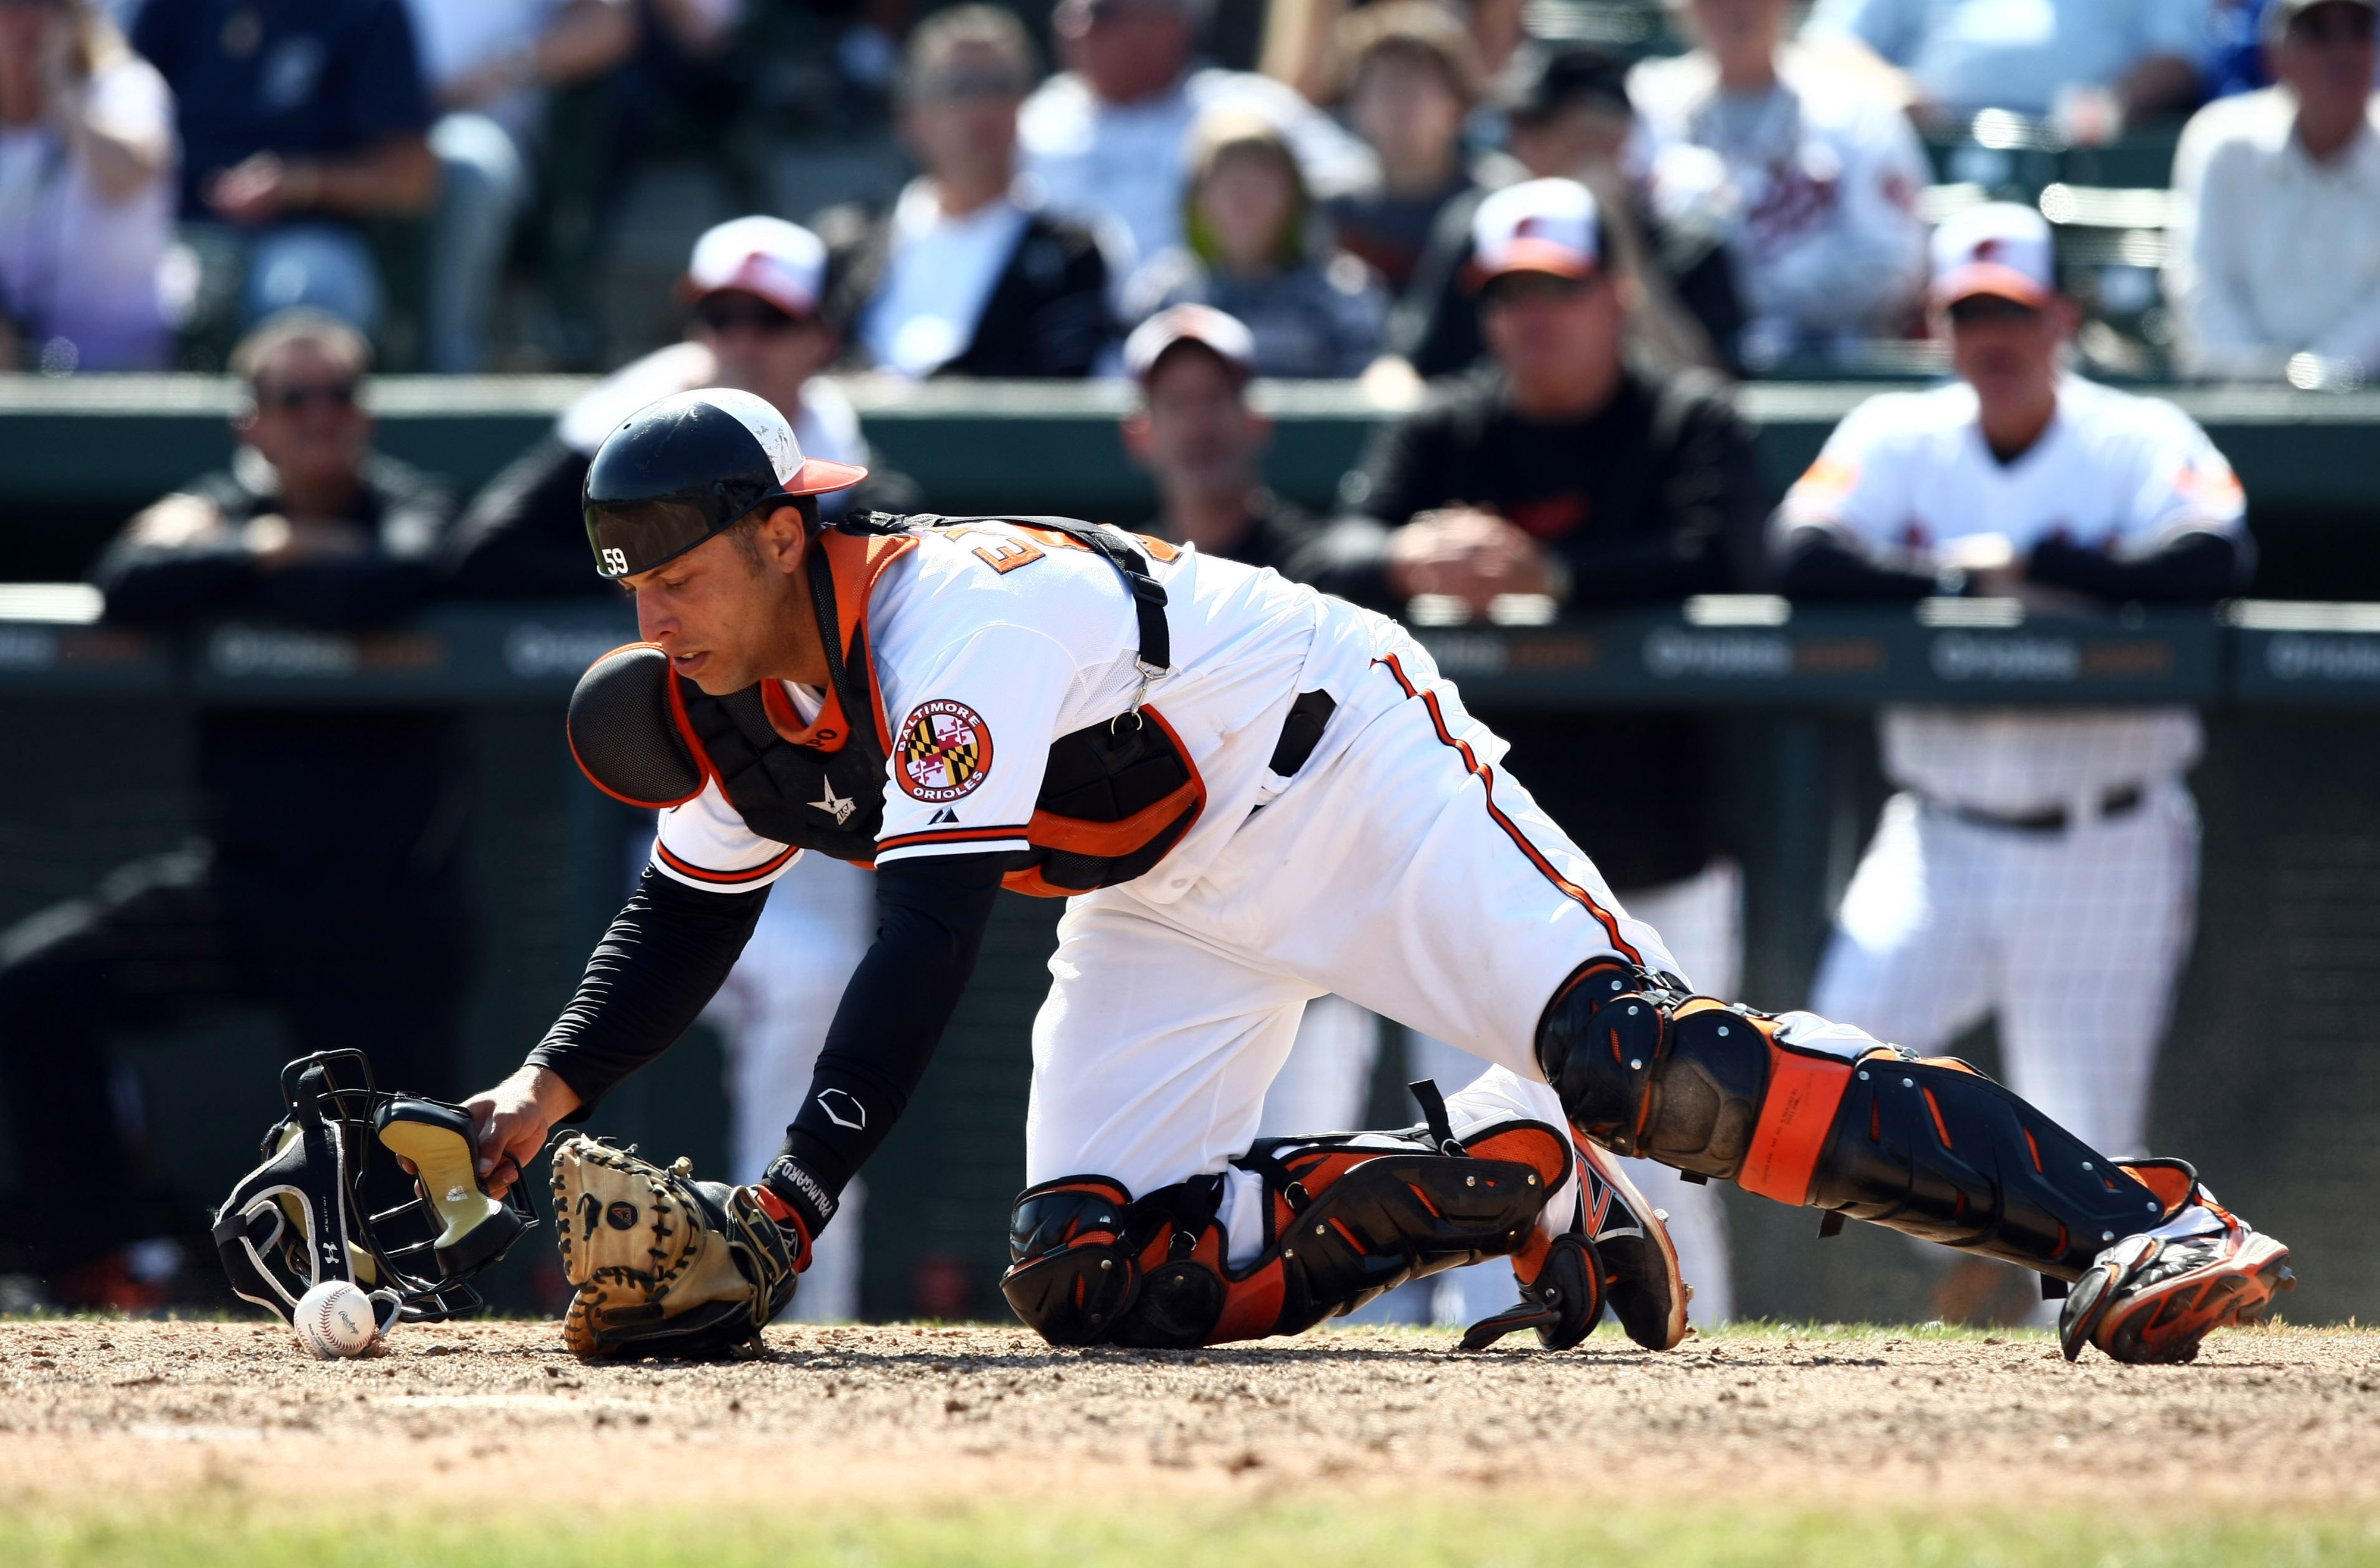 Orioles catcher, Luis Exposito, uses his mask to retrieve a wild pitch.